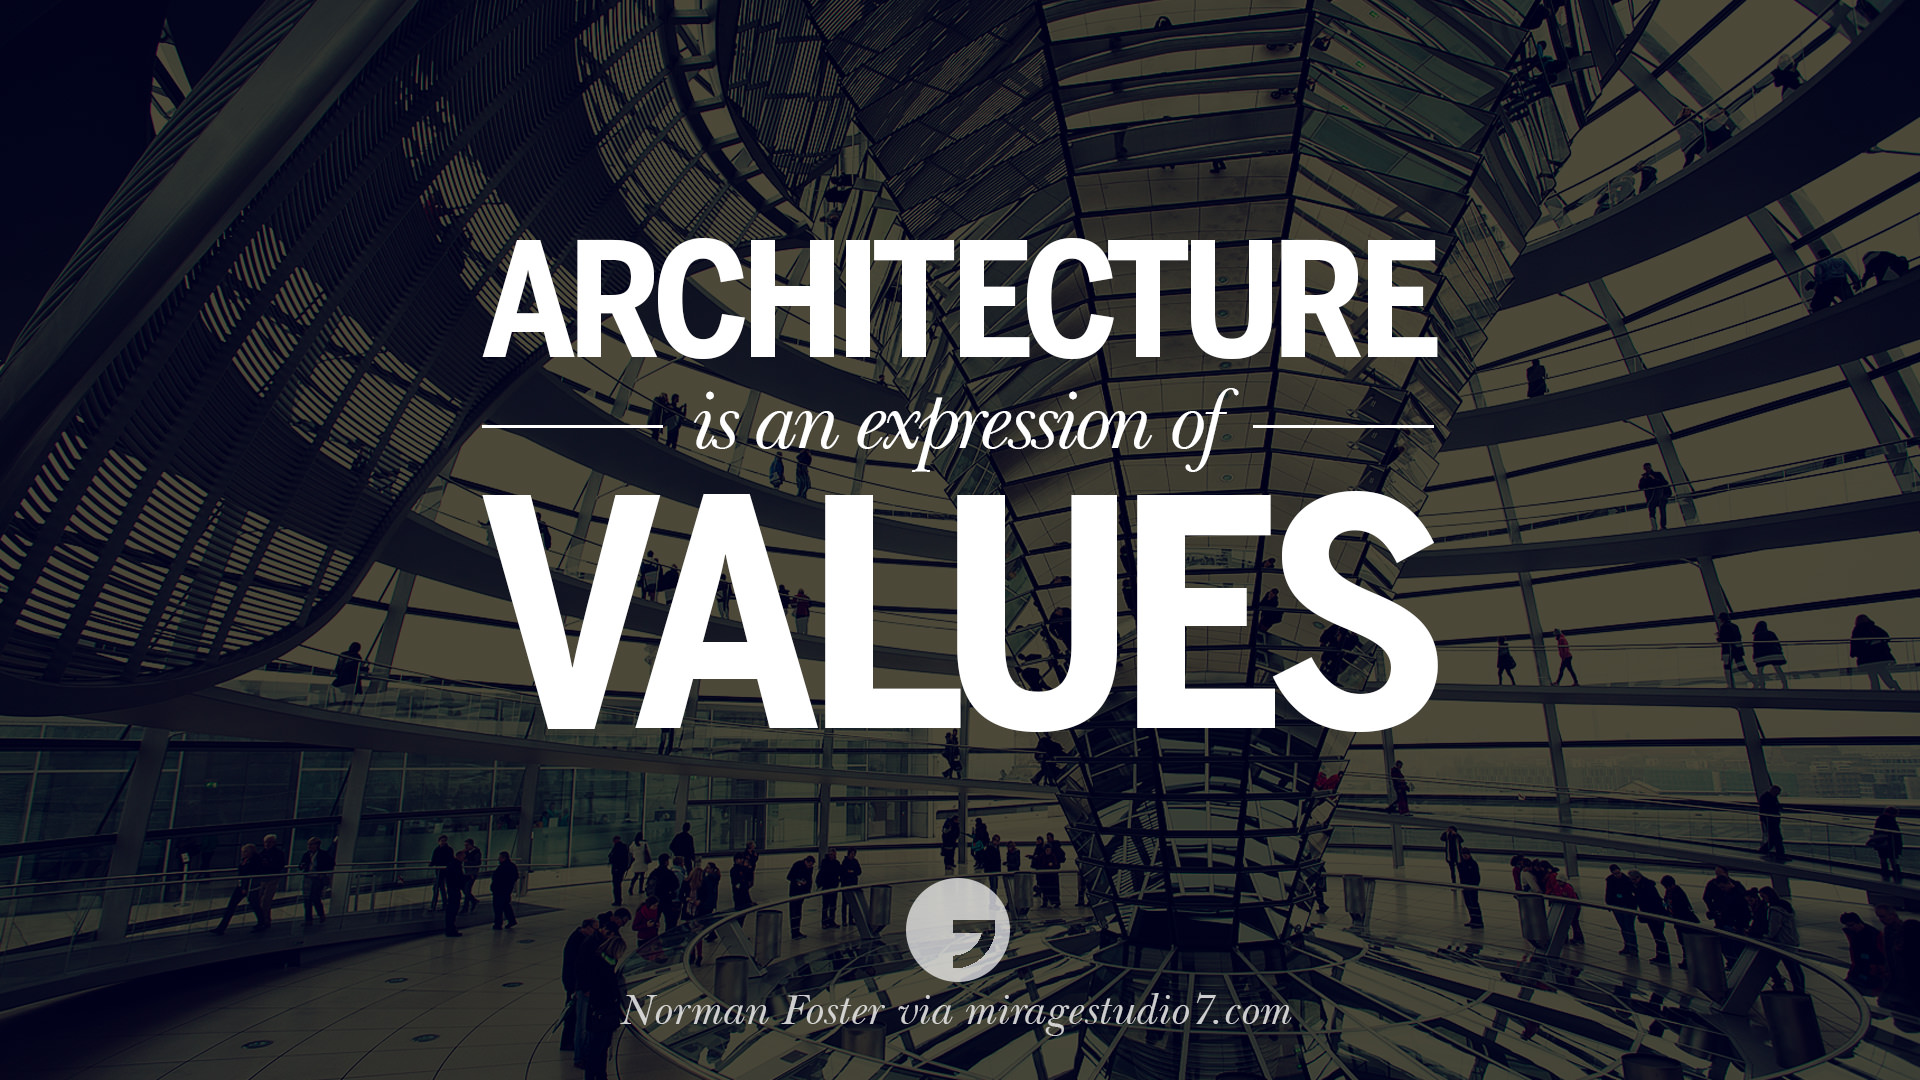 28 inspirational architecture quotes by famous architects for Find architects